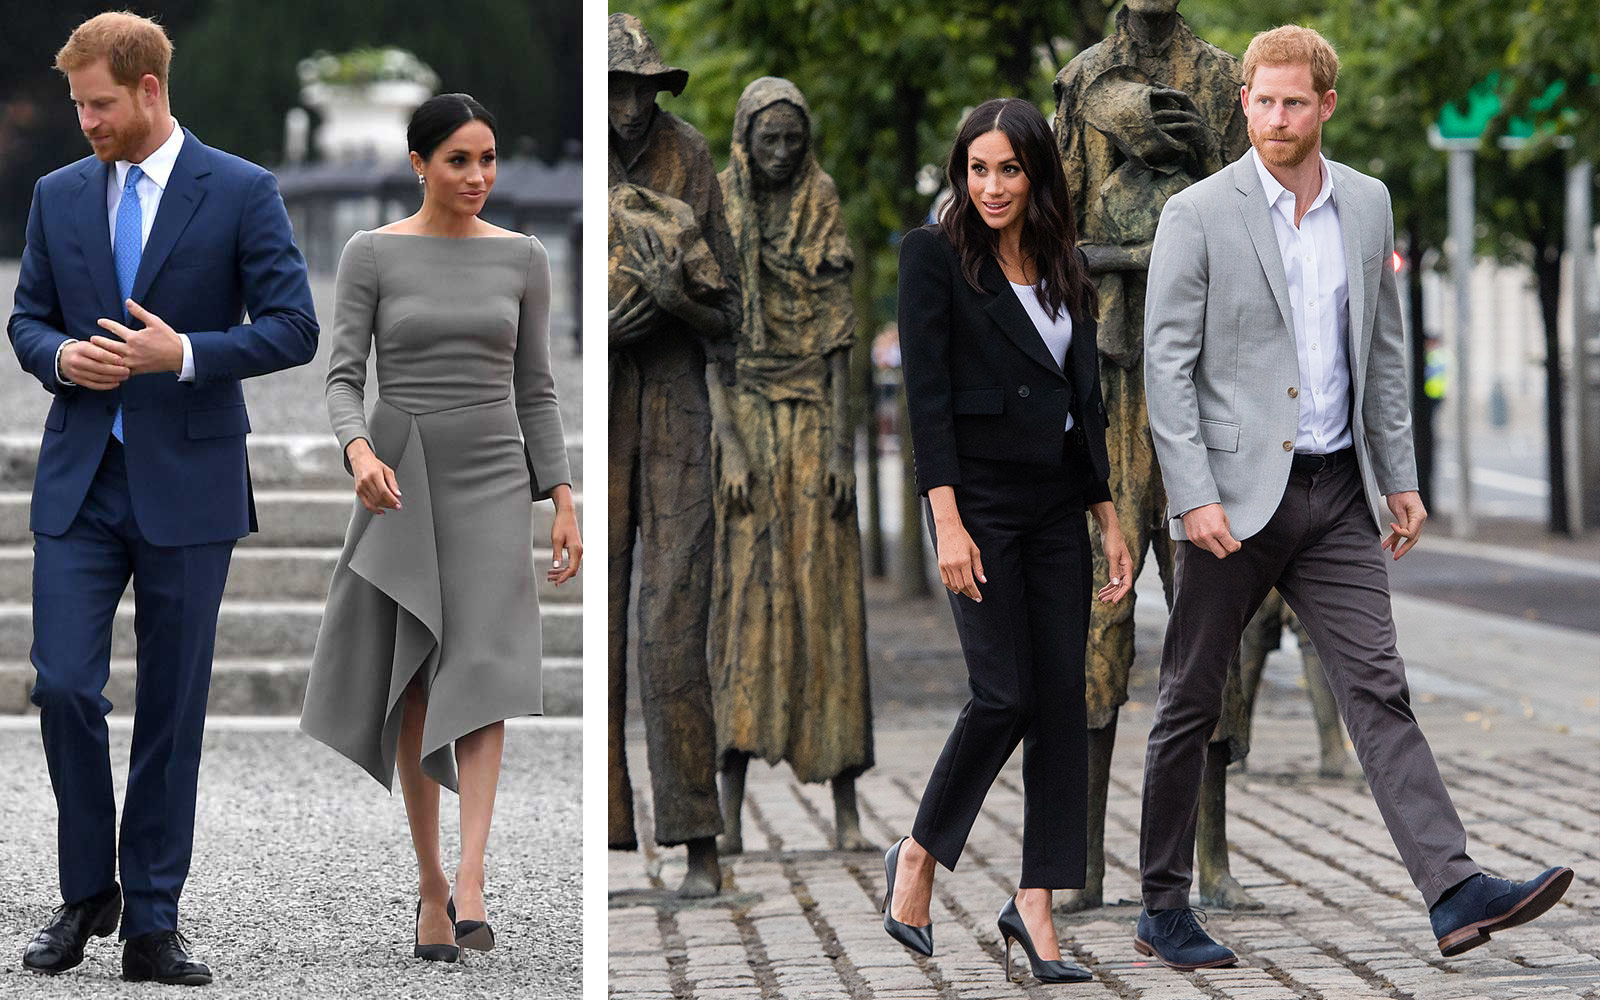 Meghan, Duchess of Sussex Meghan, Duchess of Sussex new images